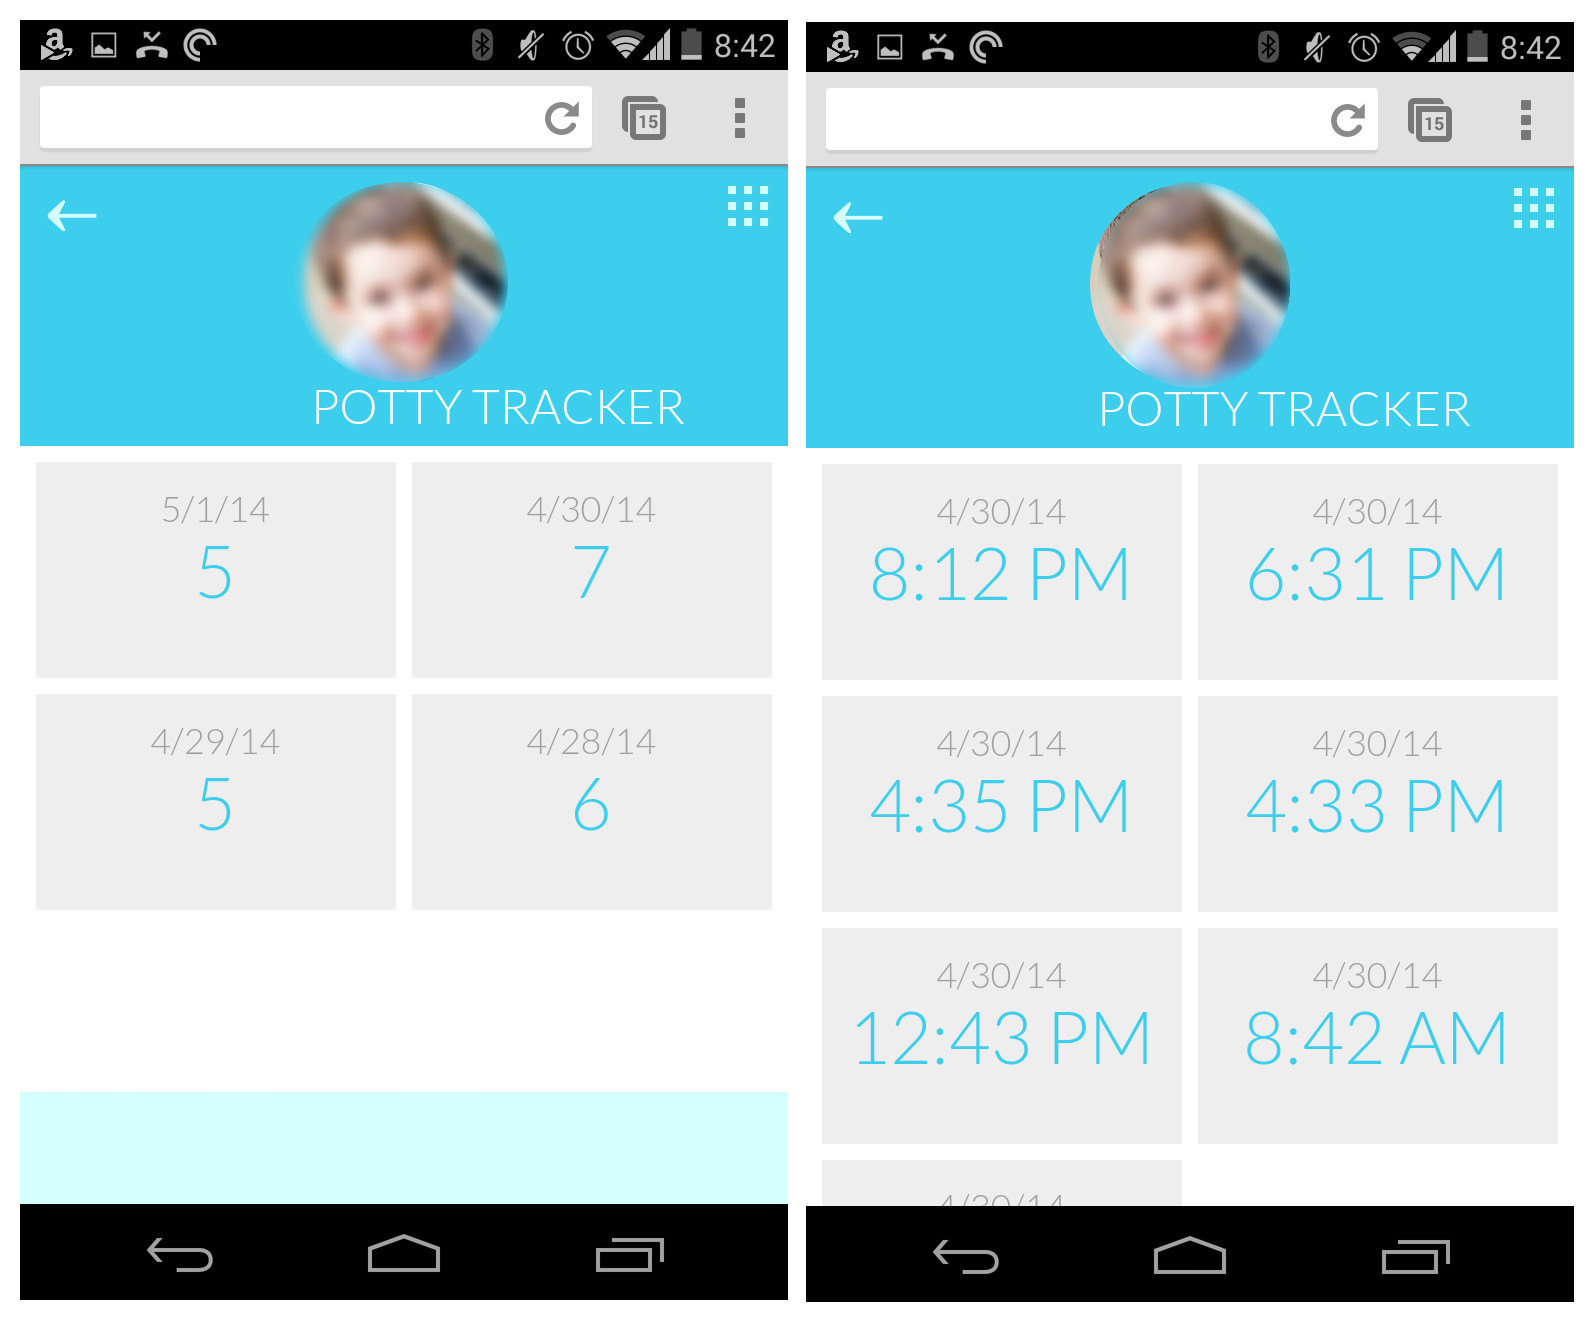 overview and detail screens of potty tracking app